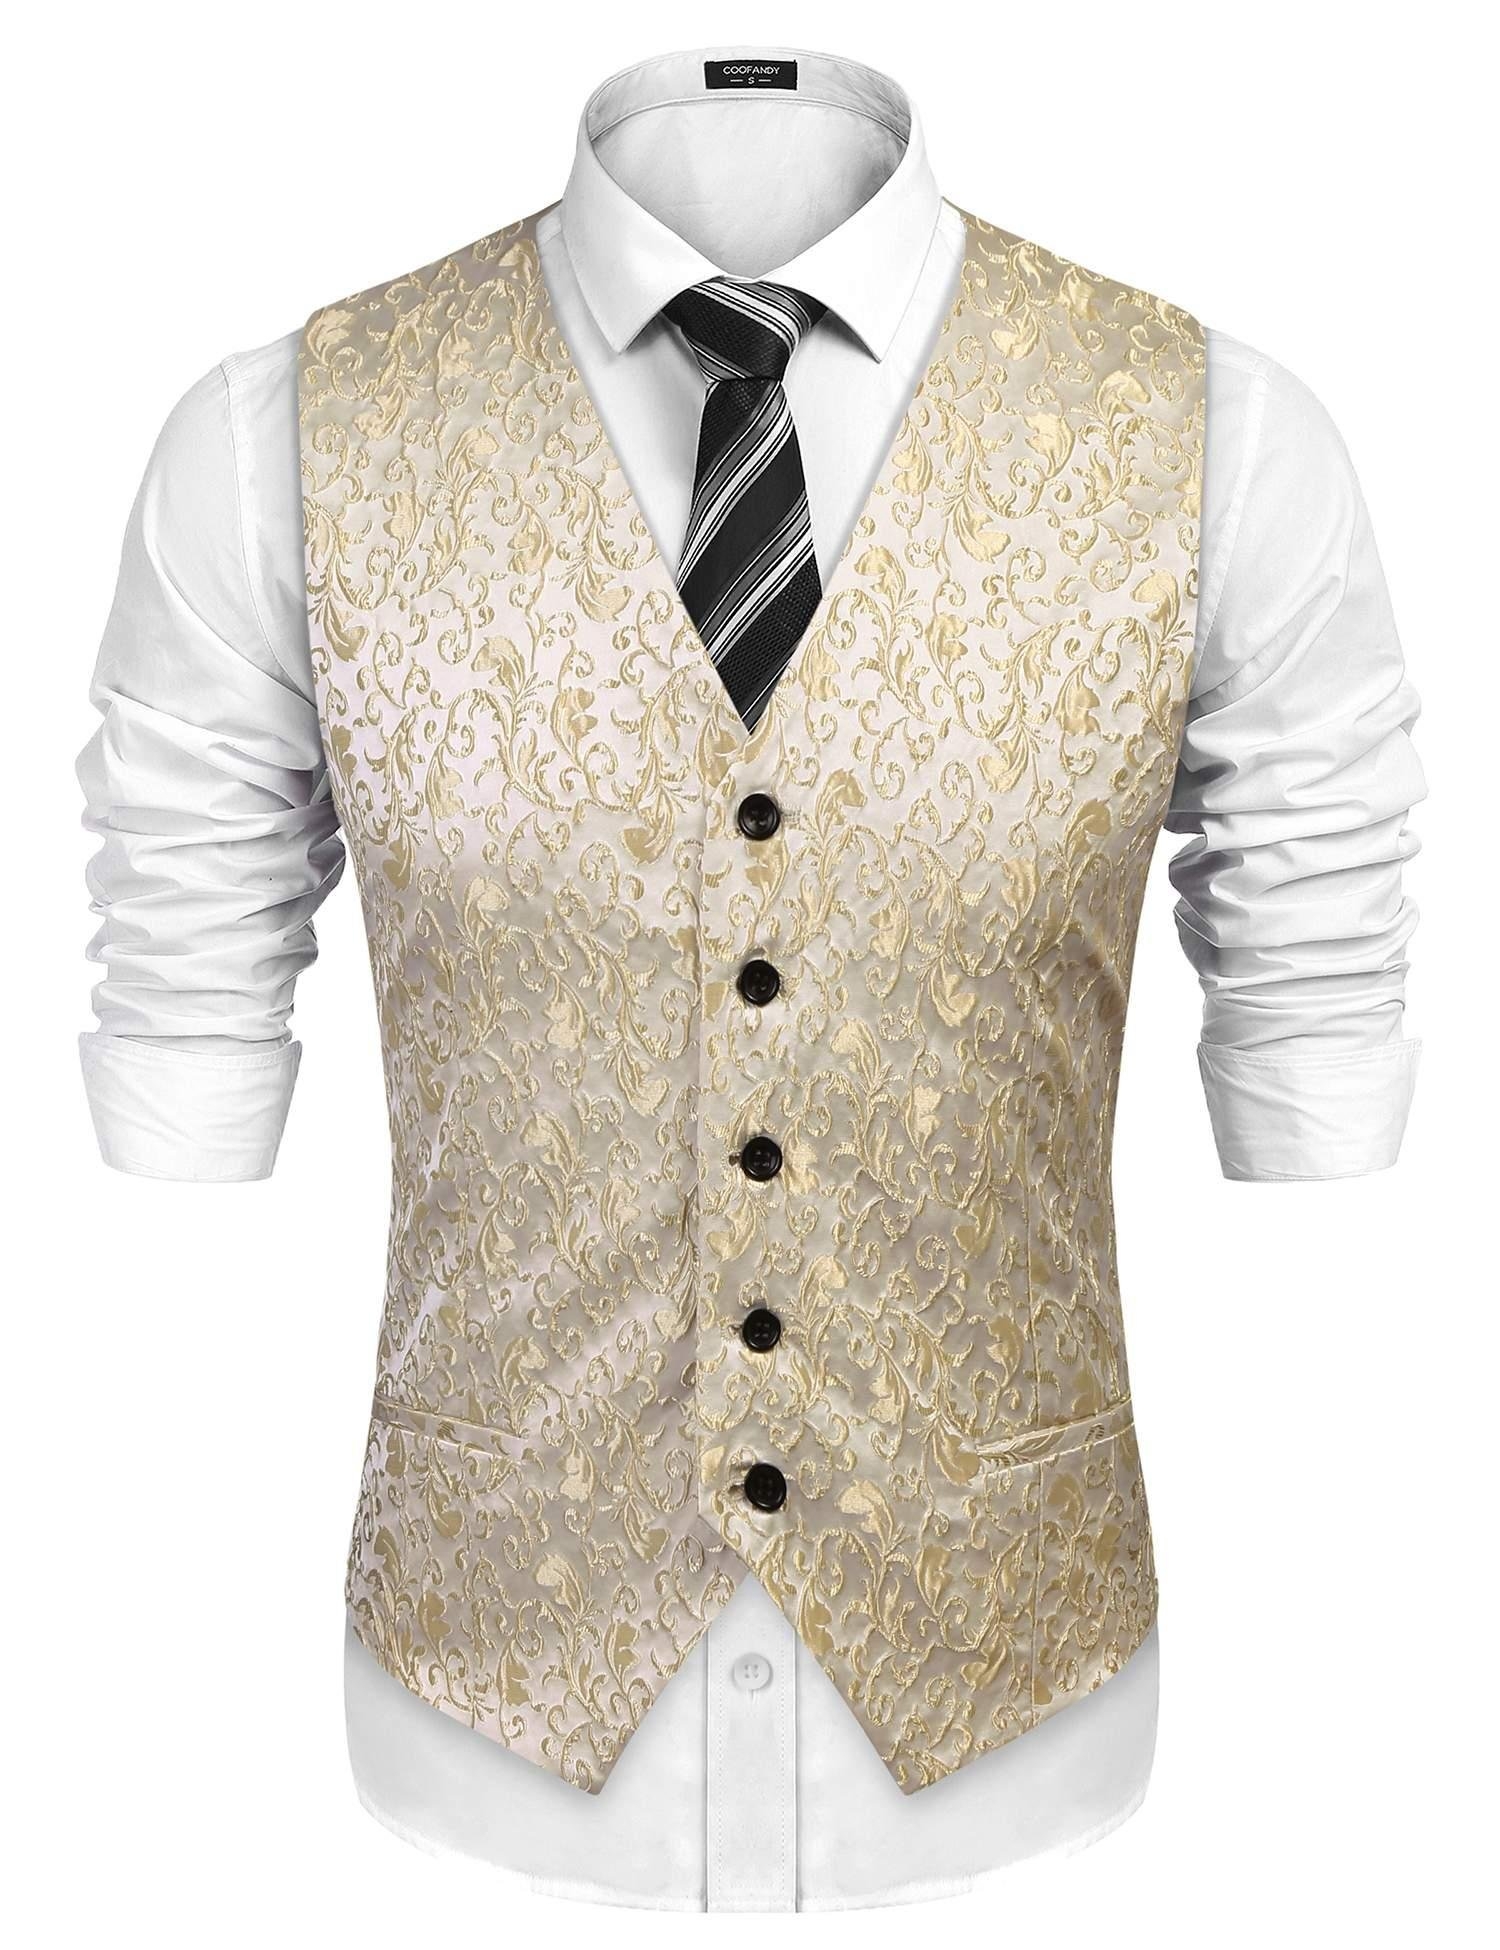 COOFANDY Men's Paisley Floral Suit Dress Tuxedo Vest Jacket Wedding Waistcoat